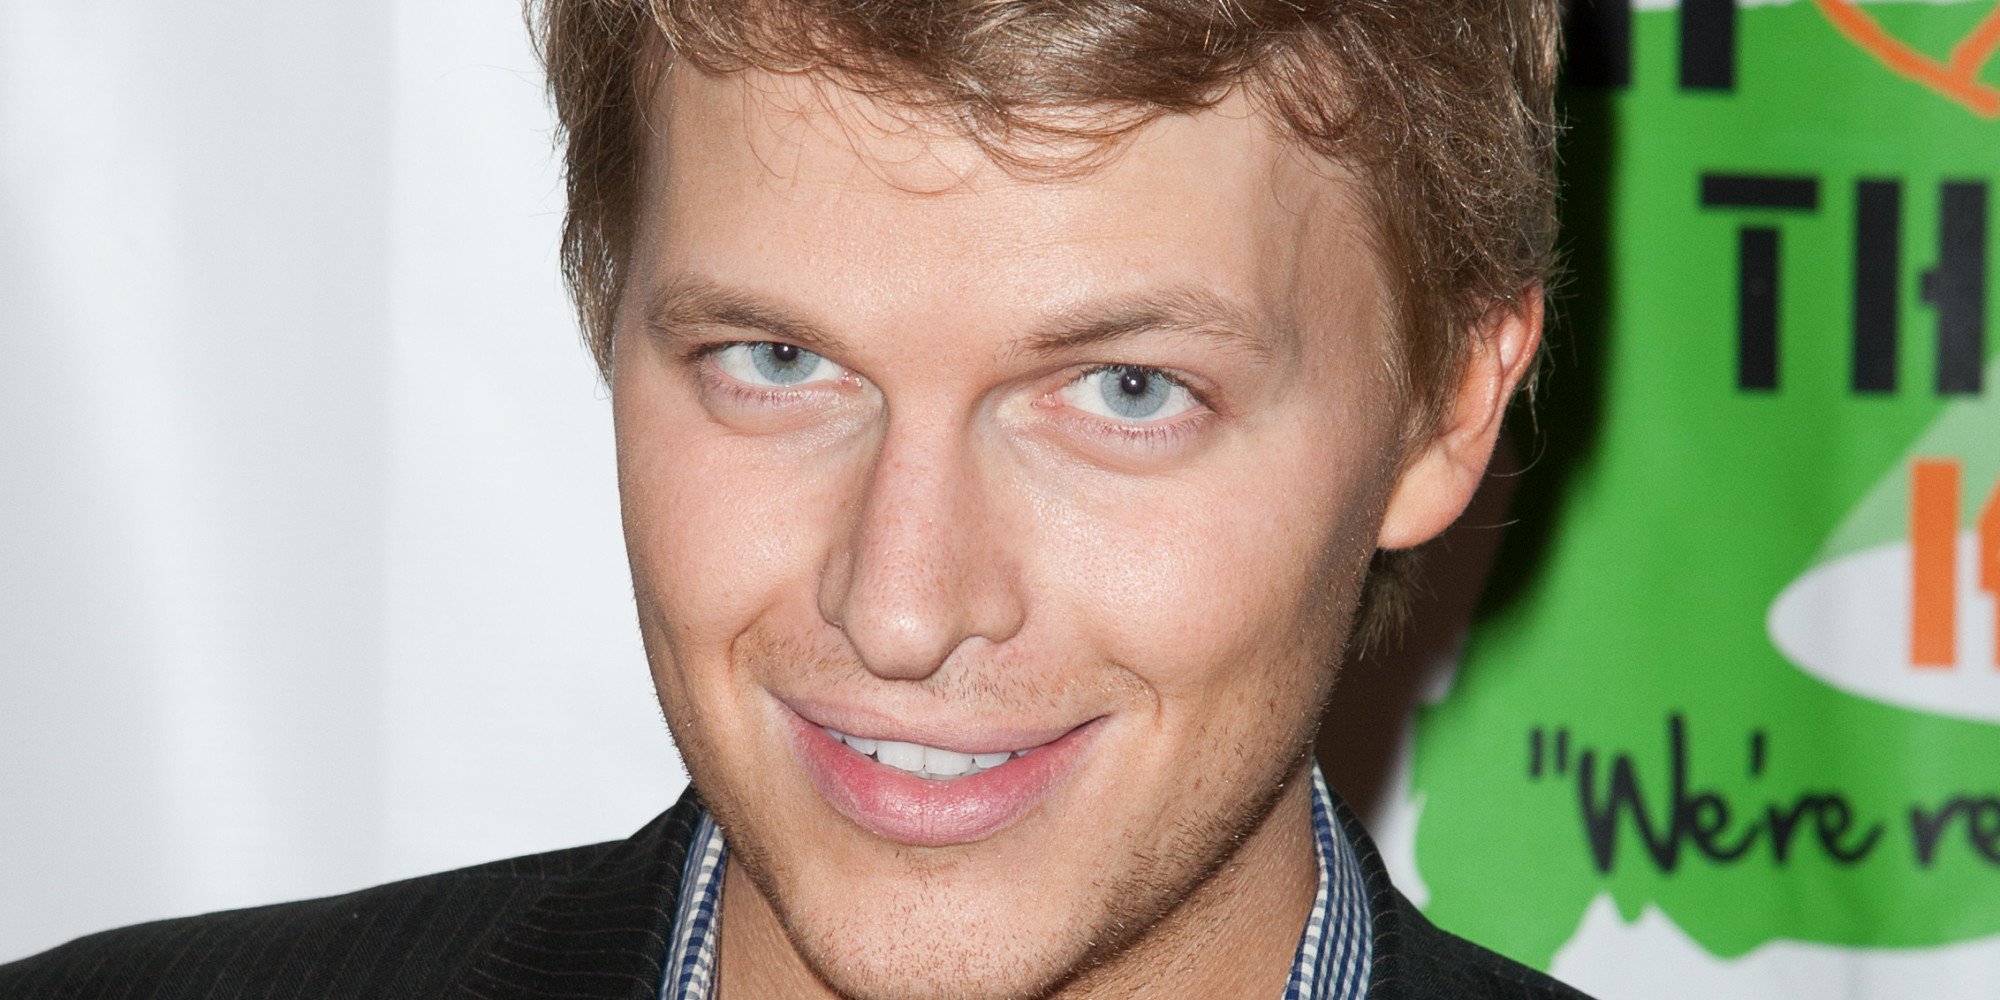 Ronan Farrow Comes Out: 'LGBT People are Some of the Most Potent Change Agents I Have Encountered'